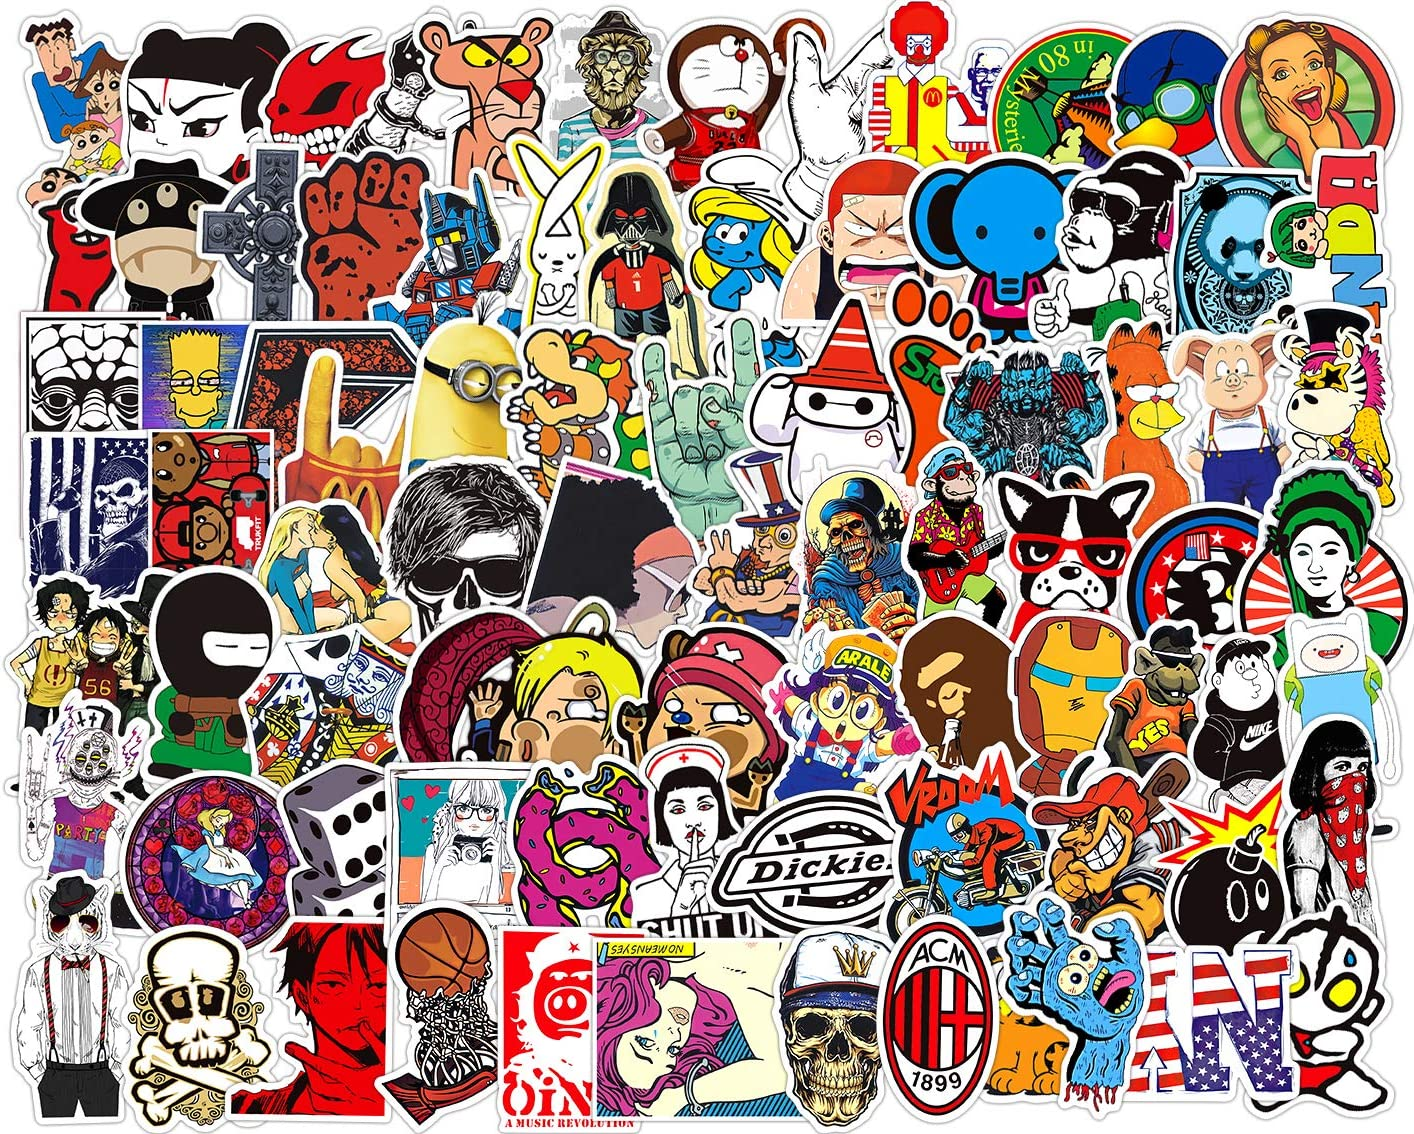 100 PCS Laptop Stickers, Car Bumper Stickers,Motorcycle Bicycle Luggage Decal Graffiti Patches Skateboard Stickers, Supercool Stickers No-Duplicate for Adults